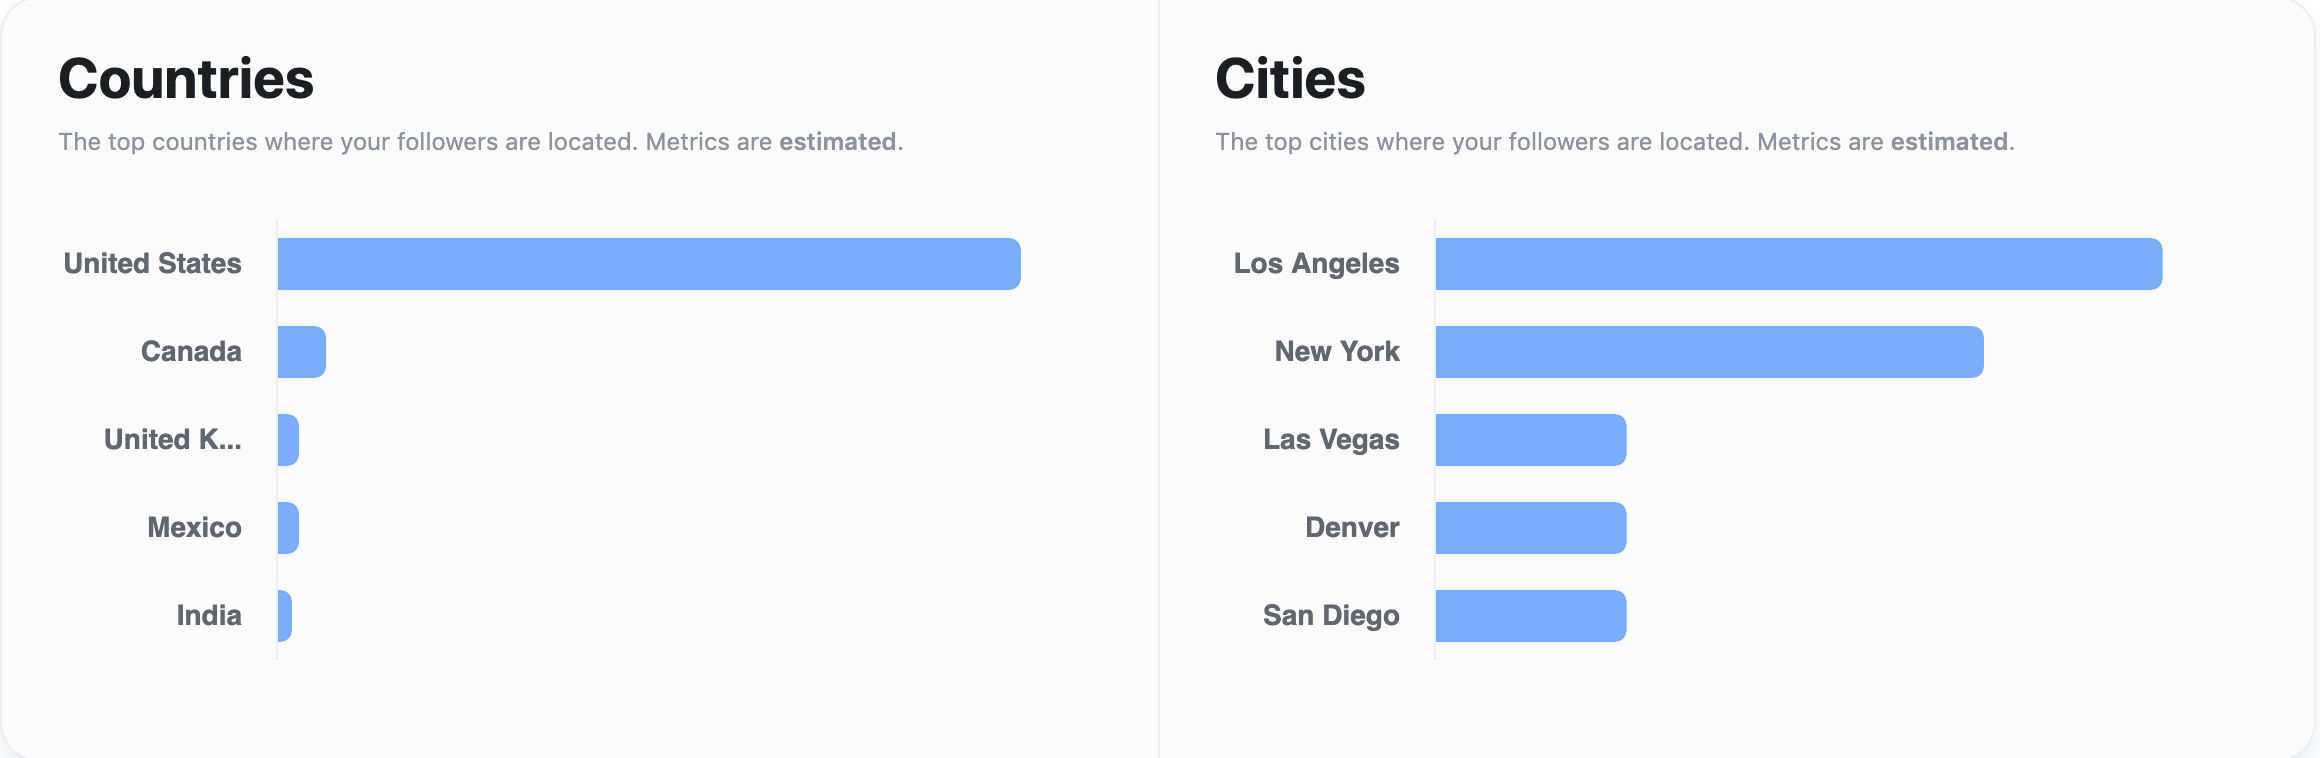 countries and cities your followers live in